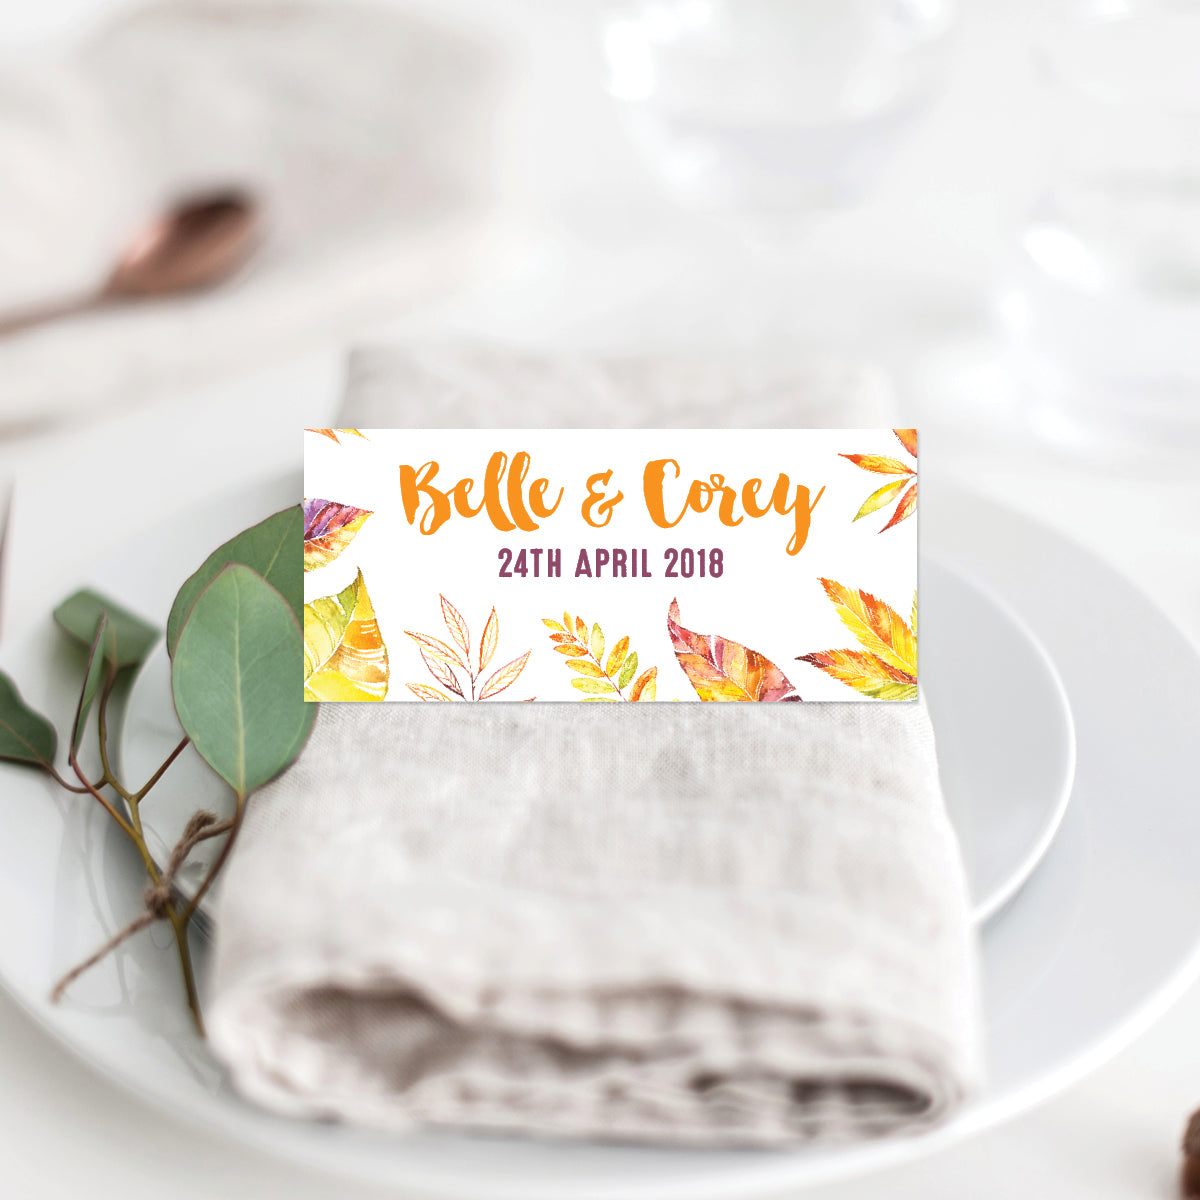 Autumn Vibes Placecard